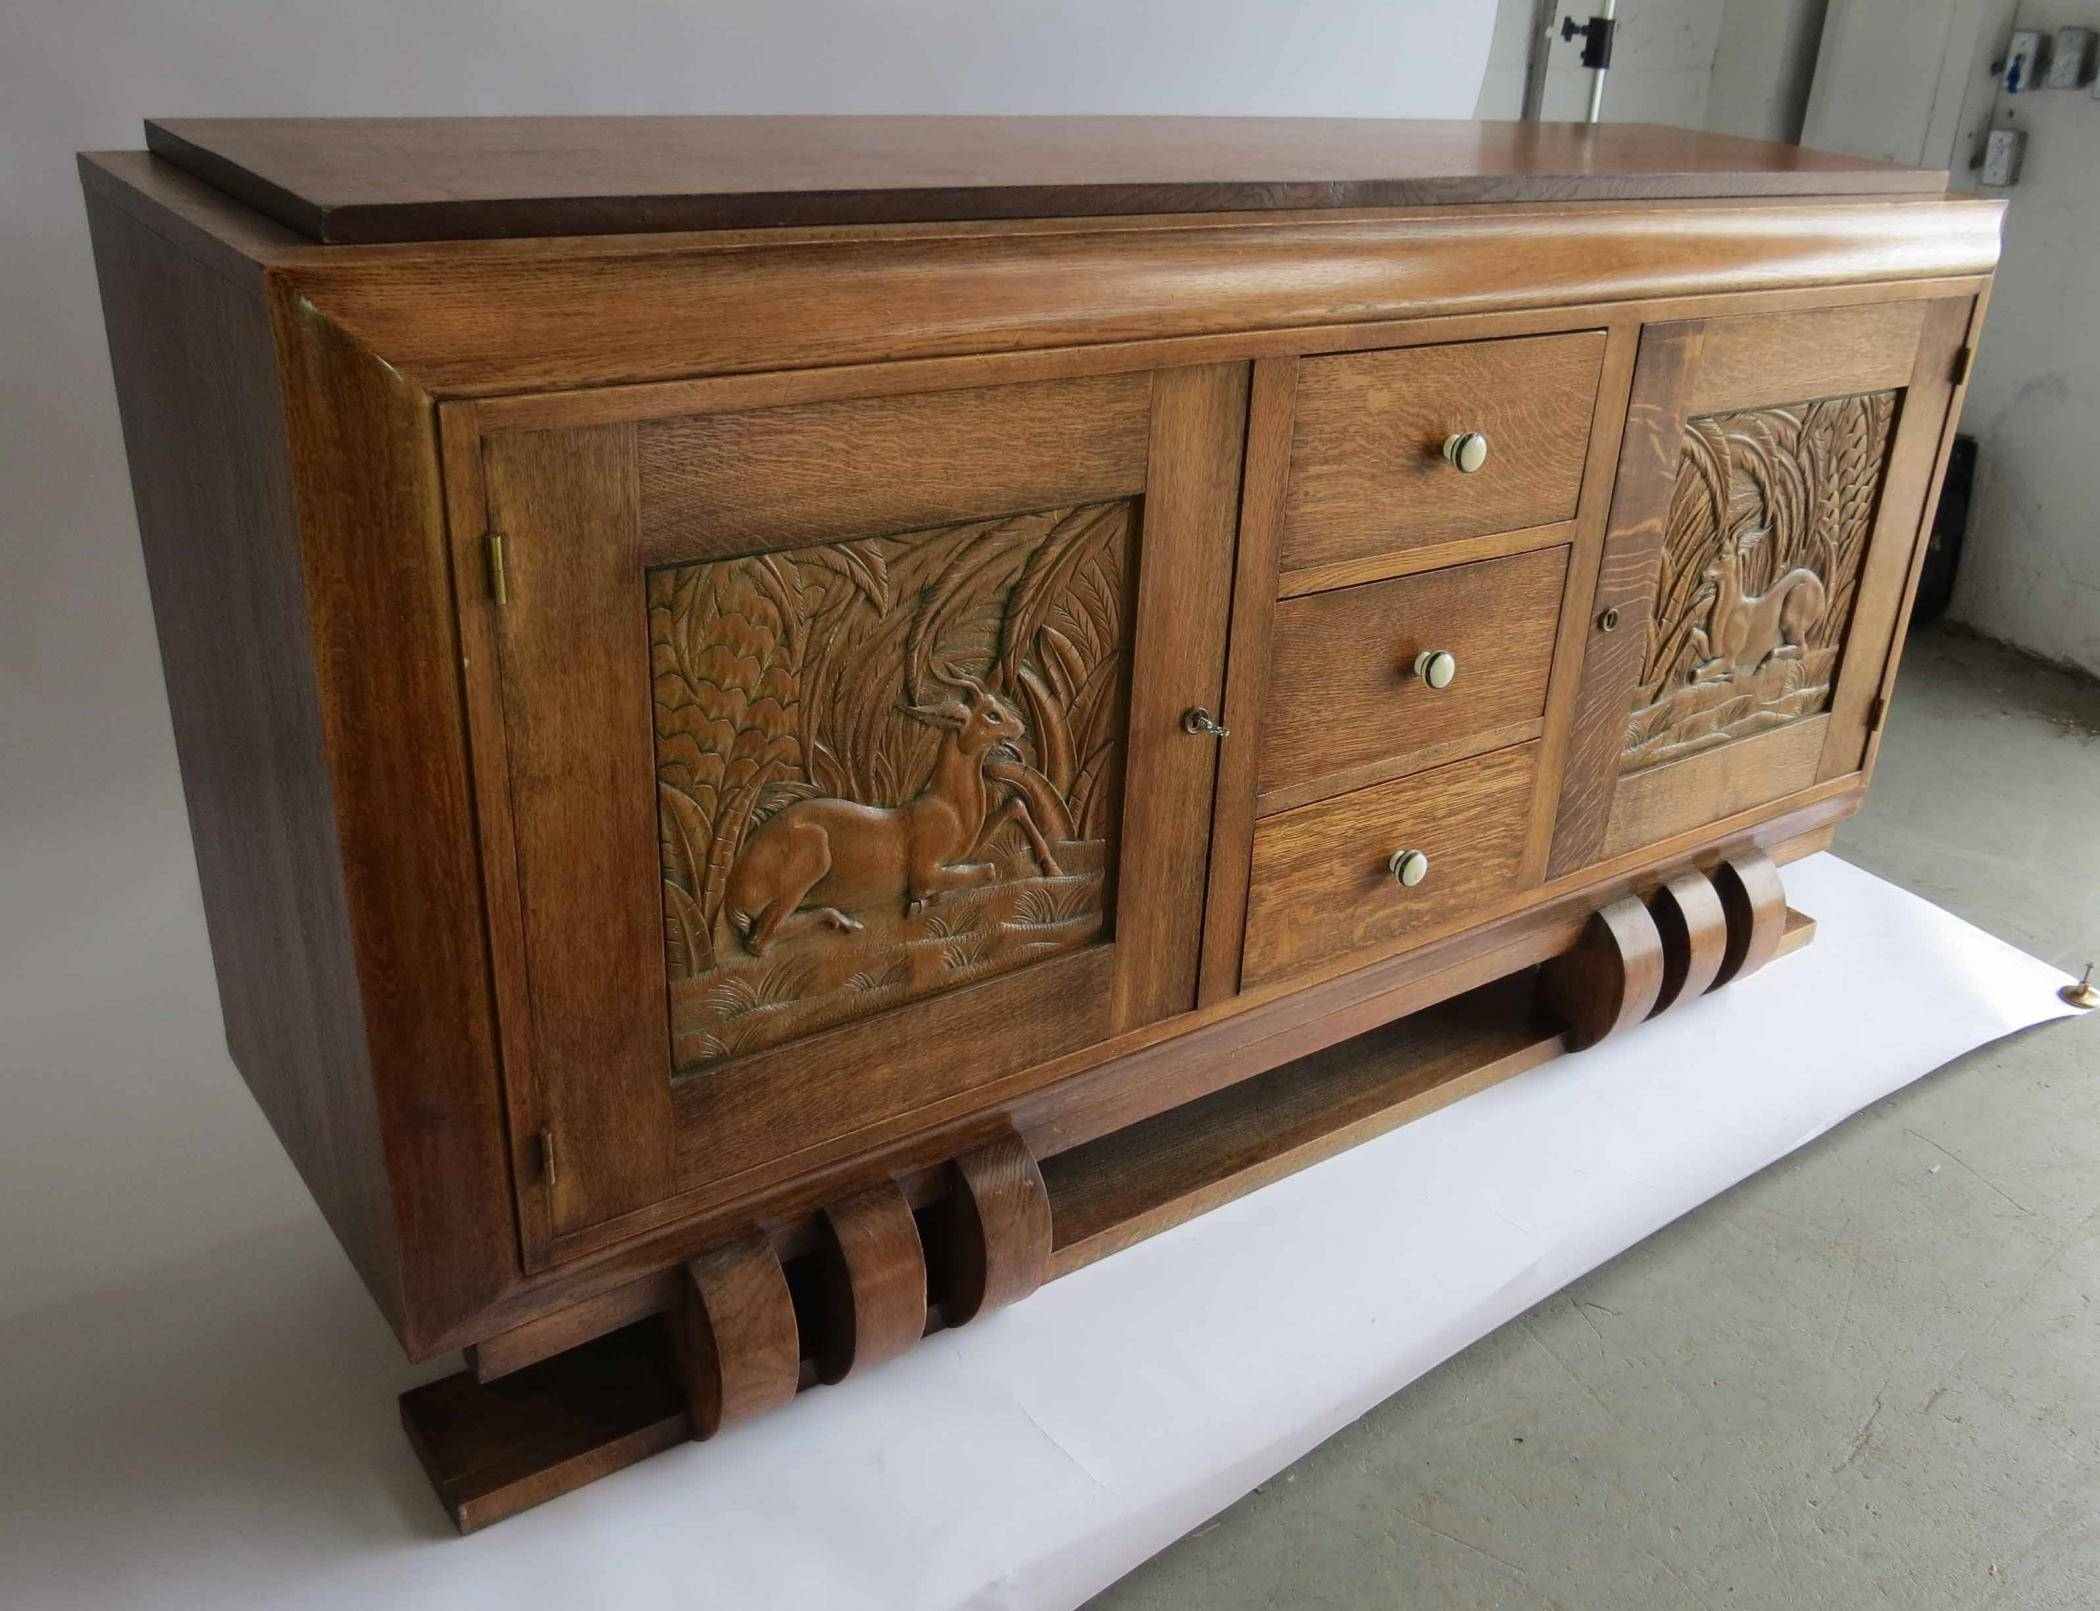 Dudouyt French Art Deco Sideboard With Carved Biches | Modernism Throughout Recent Art Deco Sideboards (#6 of 15)